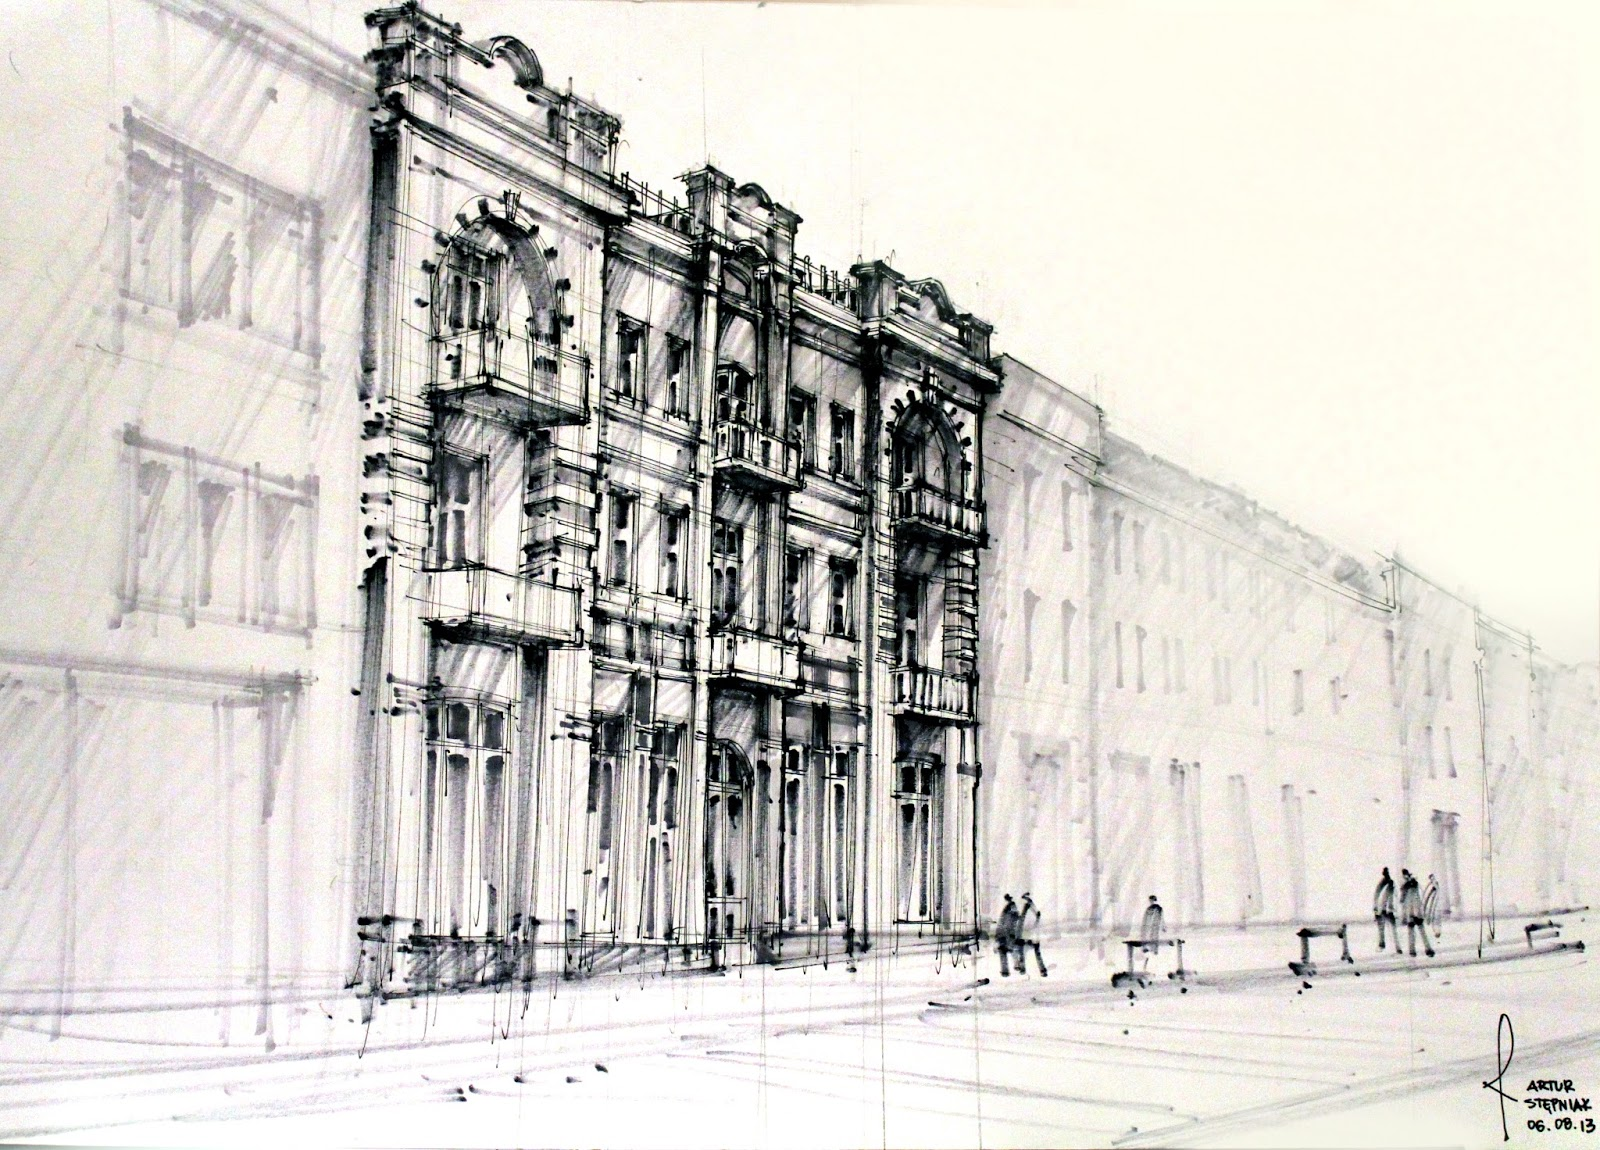 Modern architecture sketches artur st pniak gallery for Architectural plans of famous buildings